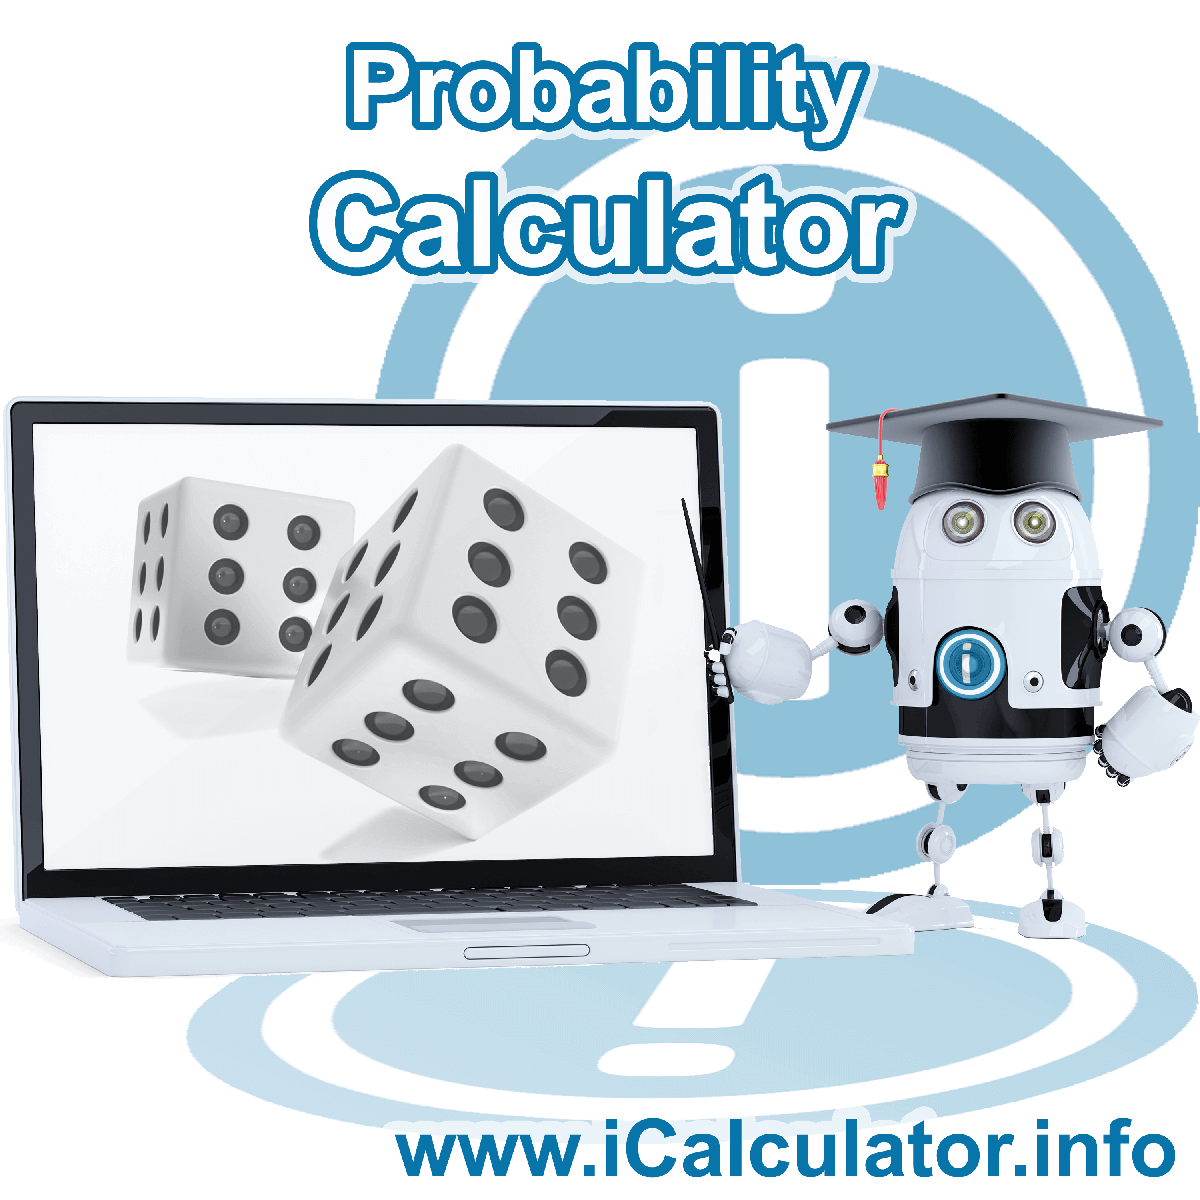 Probability Calculator: This image shows Probability formula and algorythms associated calculations used by the Probability Calculator